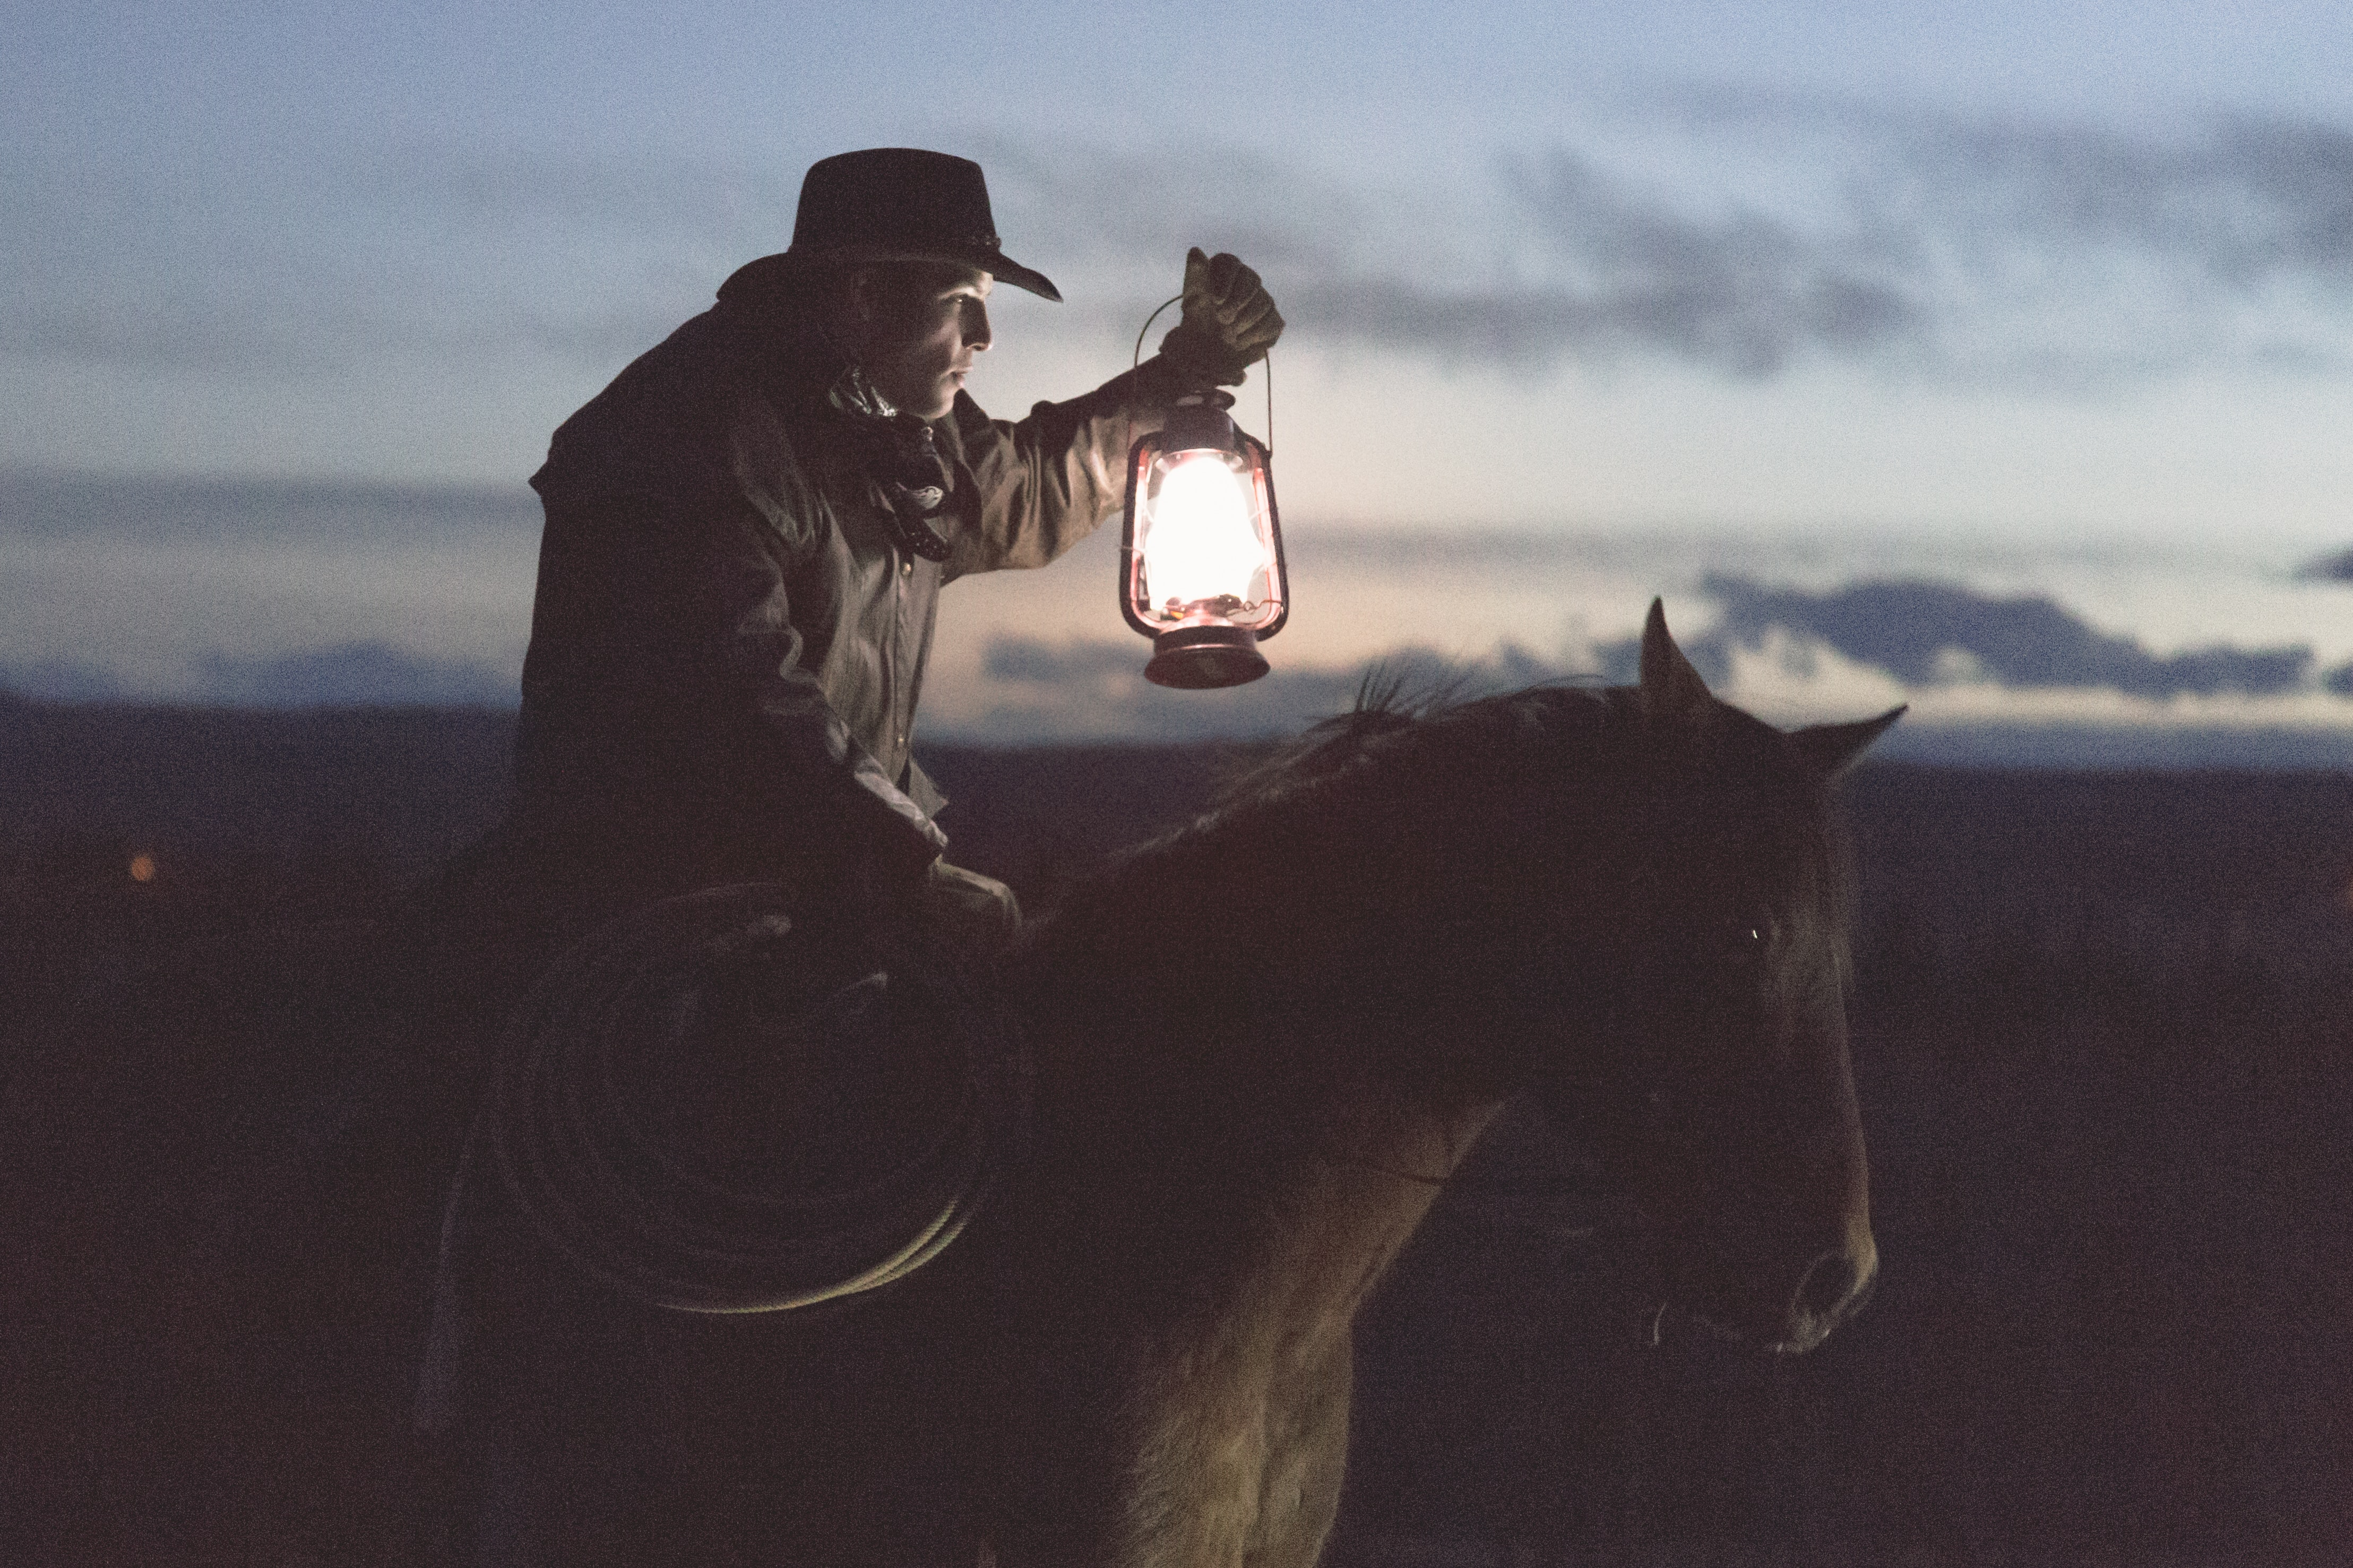 A man in a cowboy hat holds a lasso in one hand and a lamp in another while riding a horse